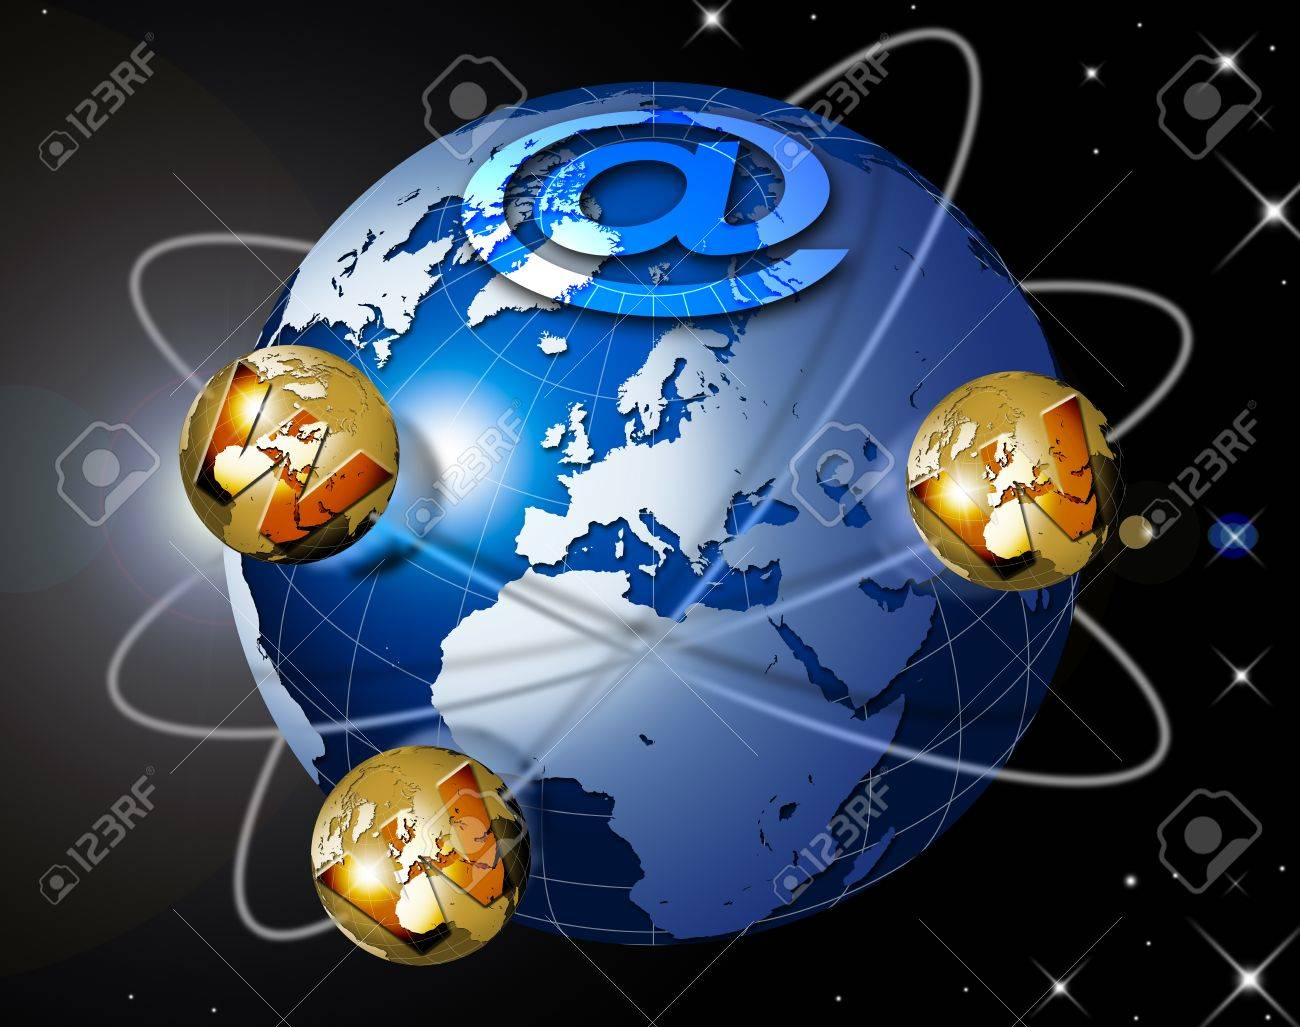 Illustration symbol www and internet with blue terrestrial globe, planets and stars Stock Illustration - 9707436